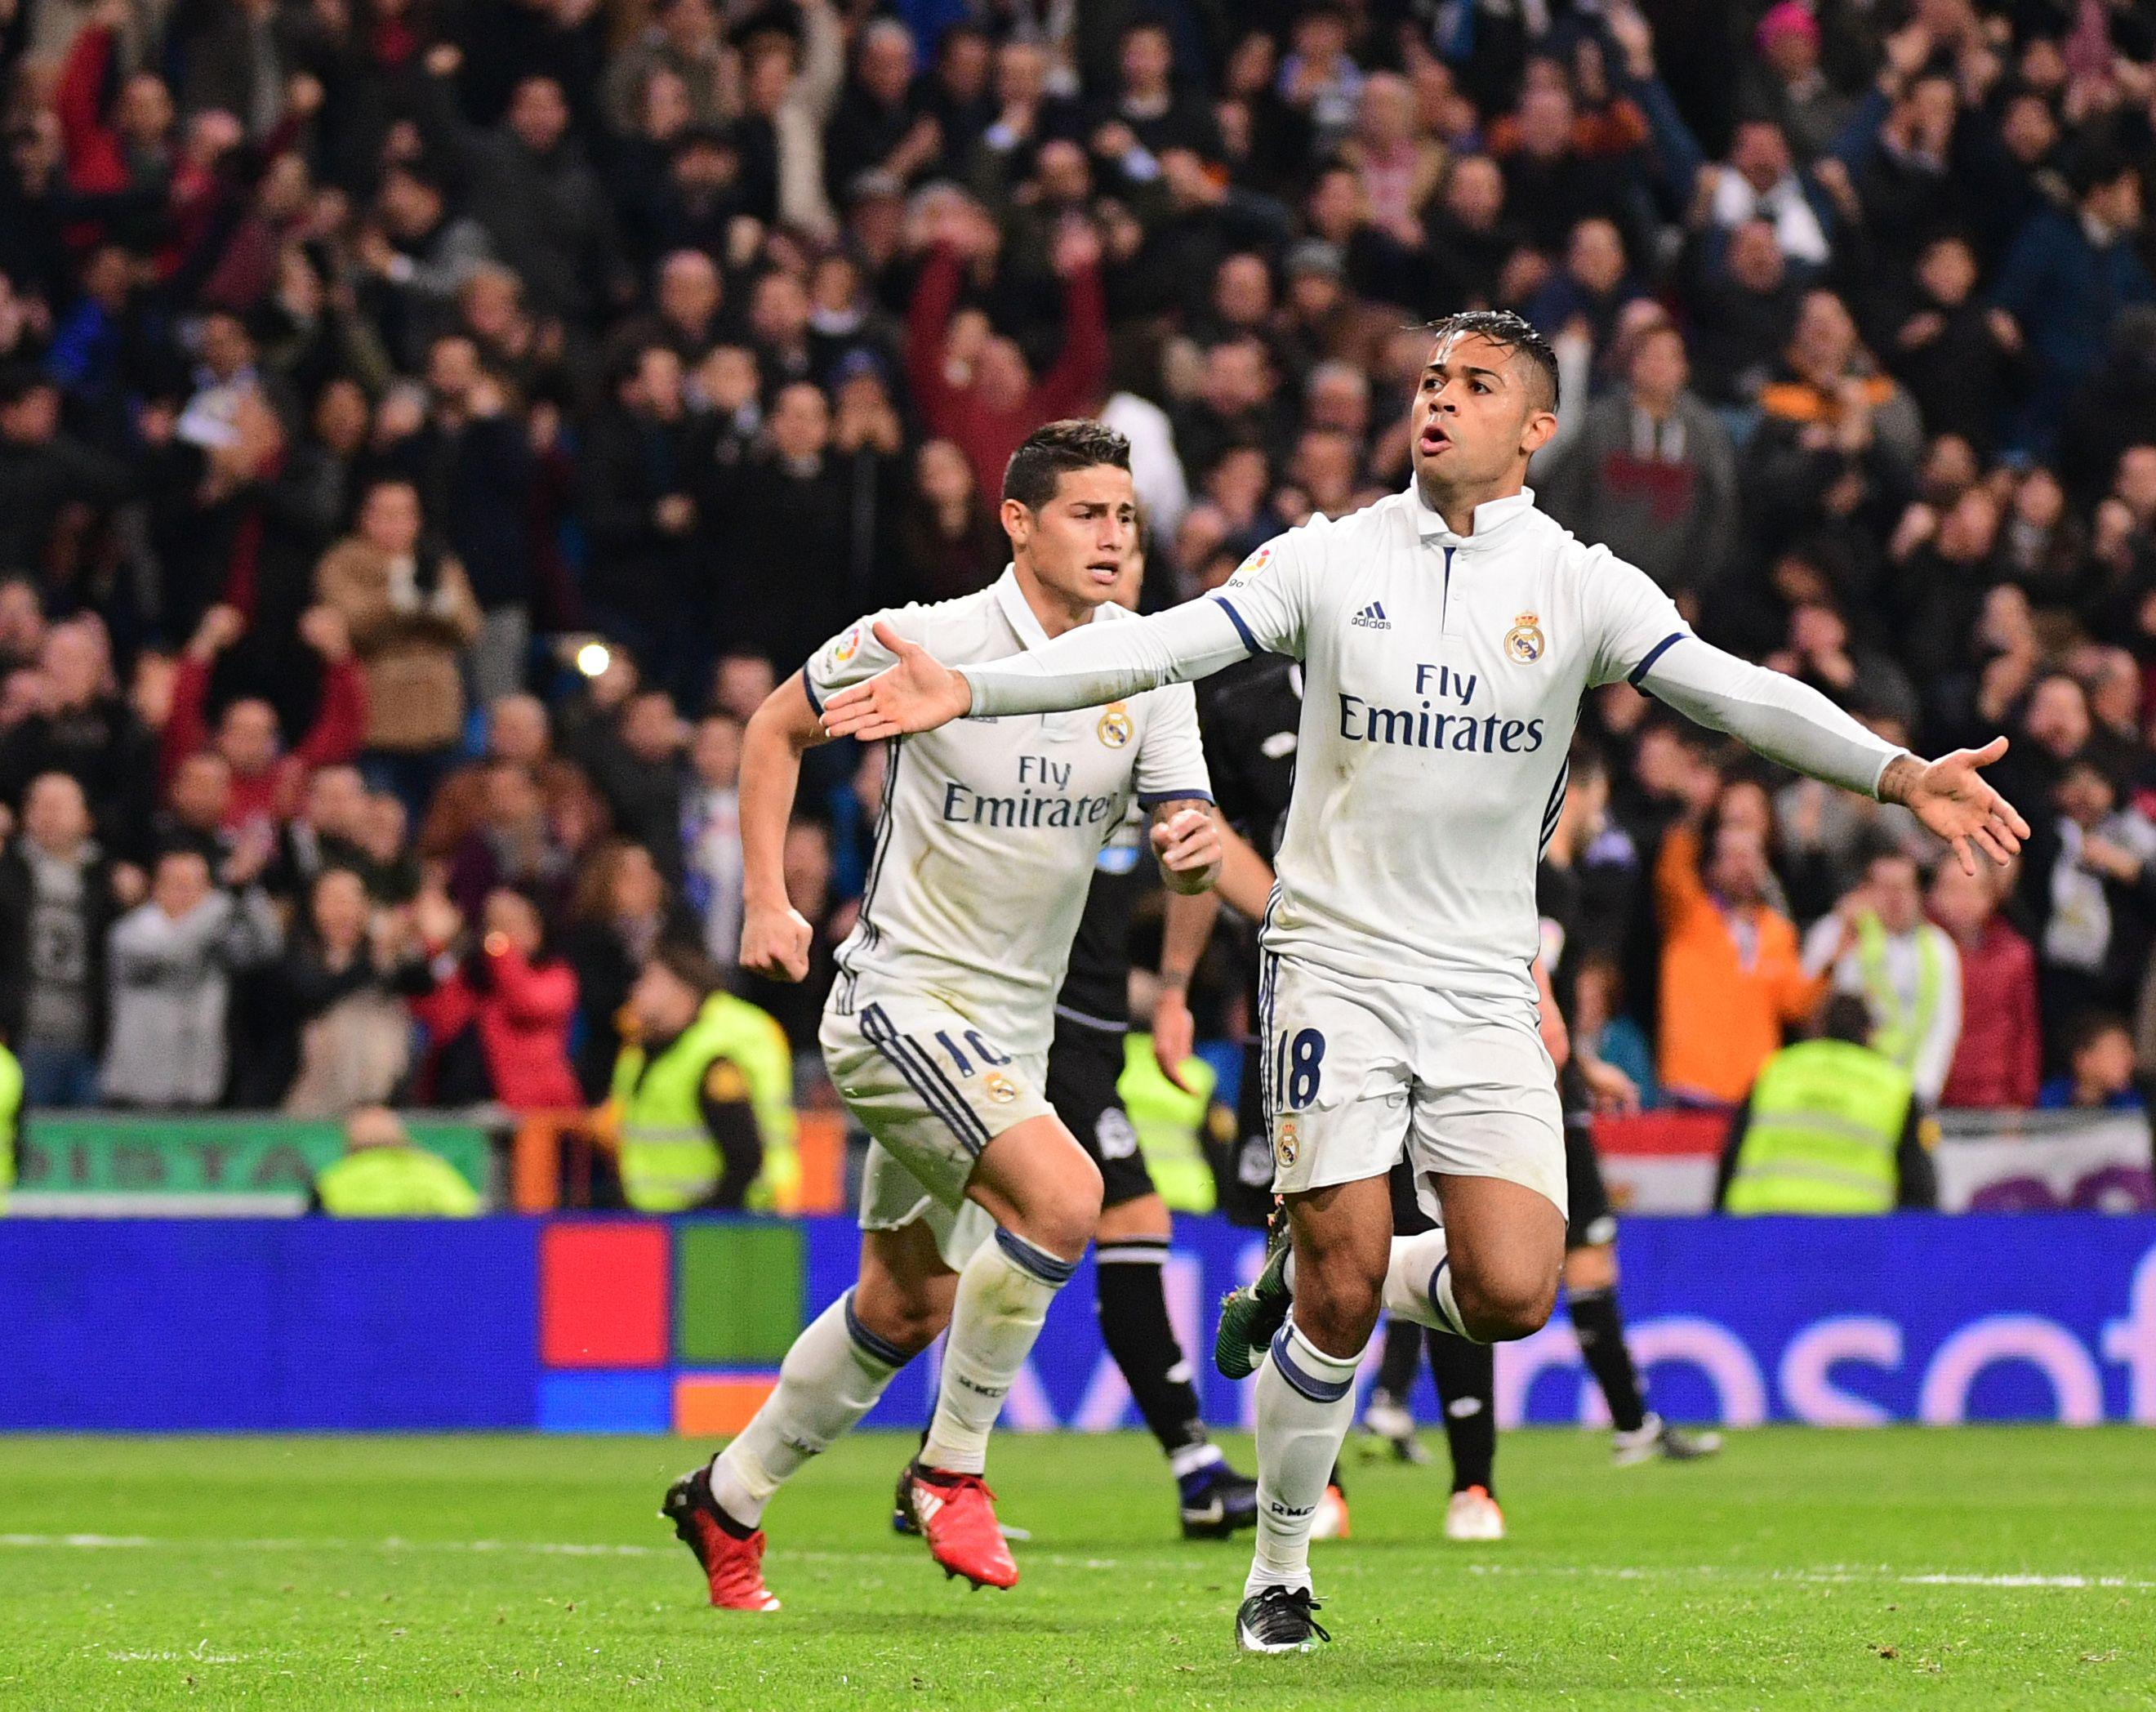 Diaz is showing Real Madrid what they are missing